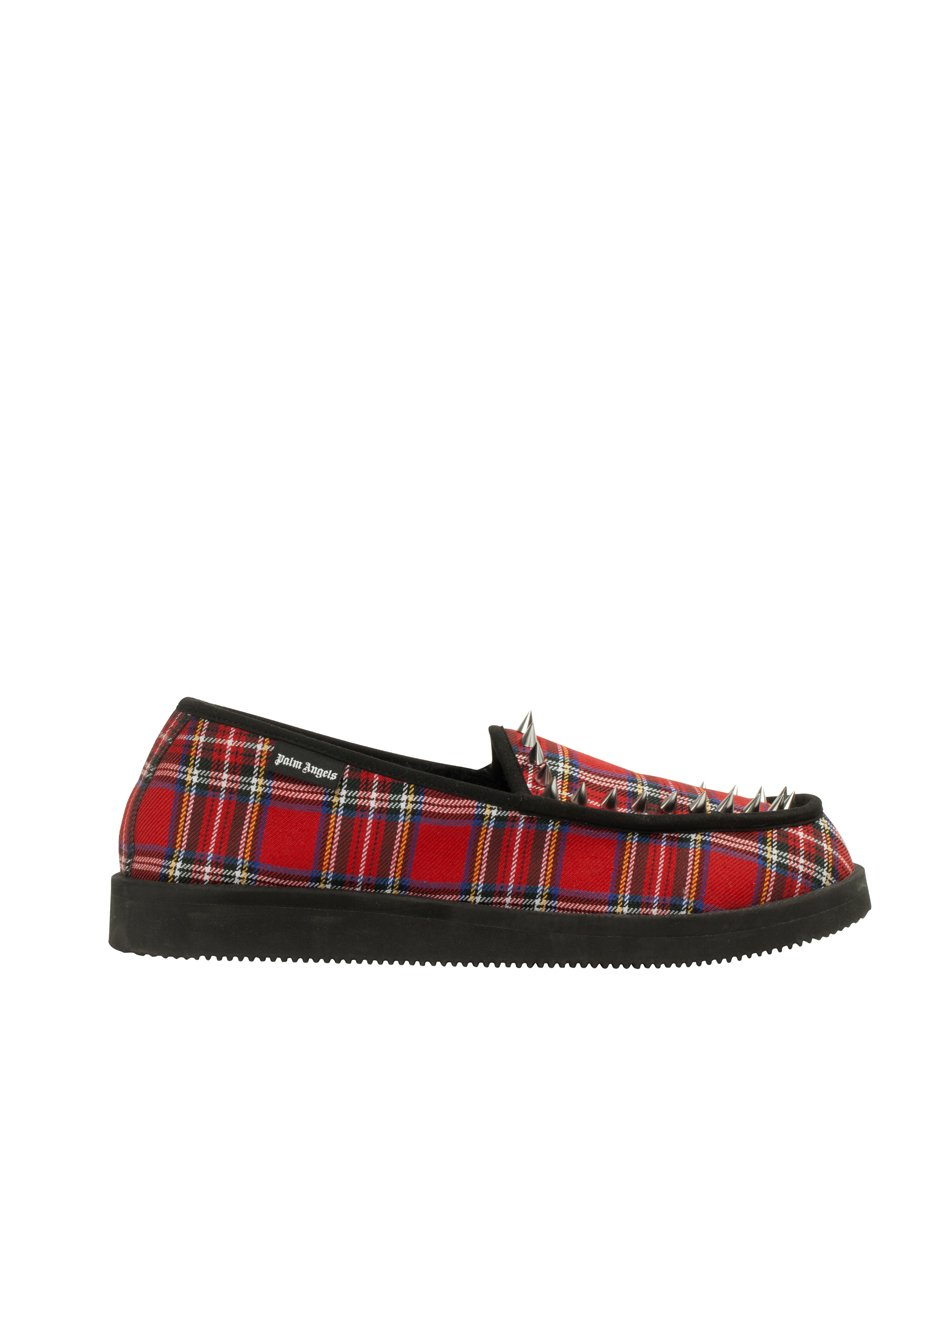 Suicoke Palm Angels Edition SSD Tartan Red